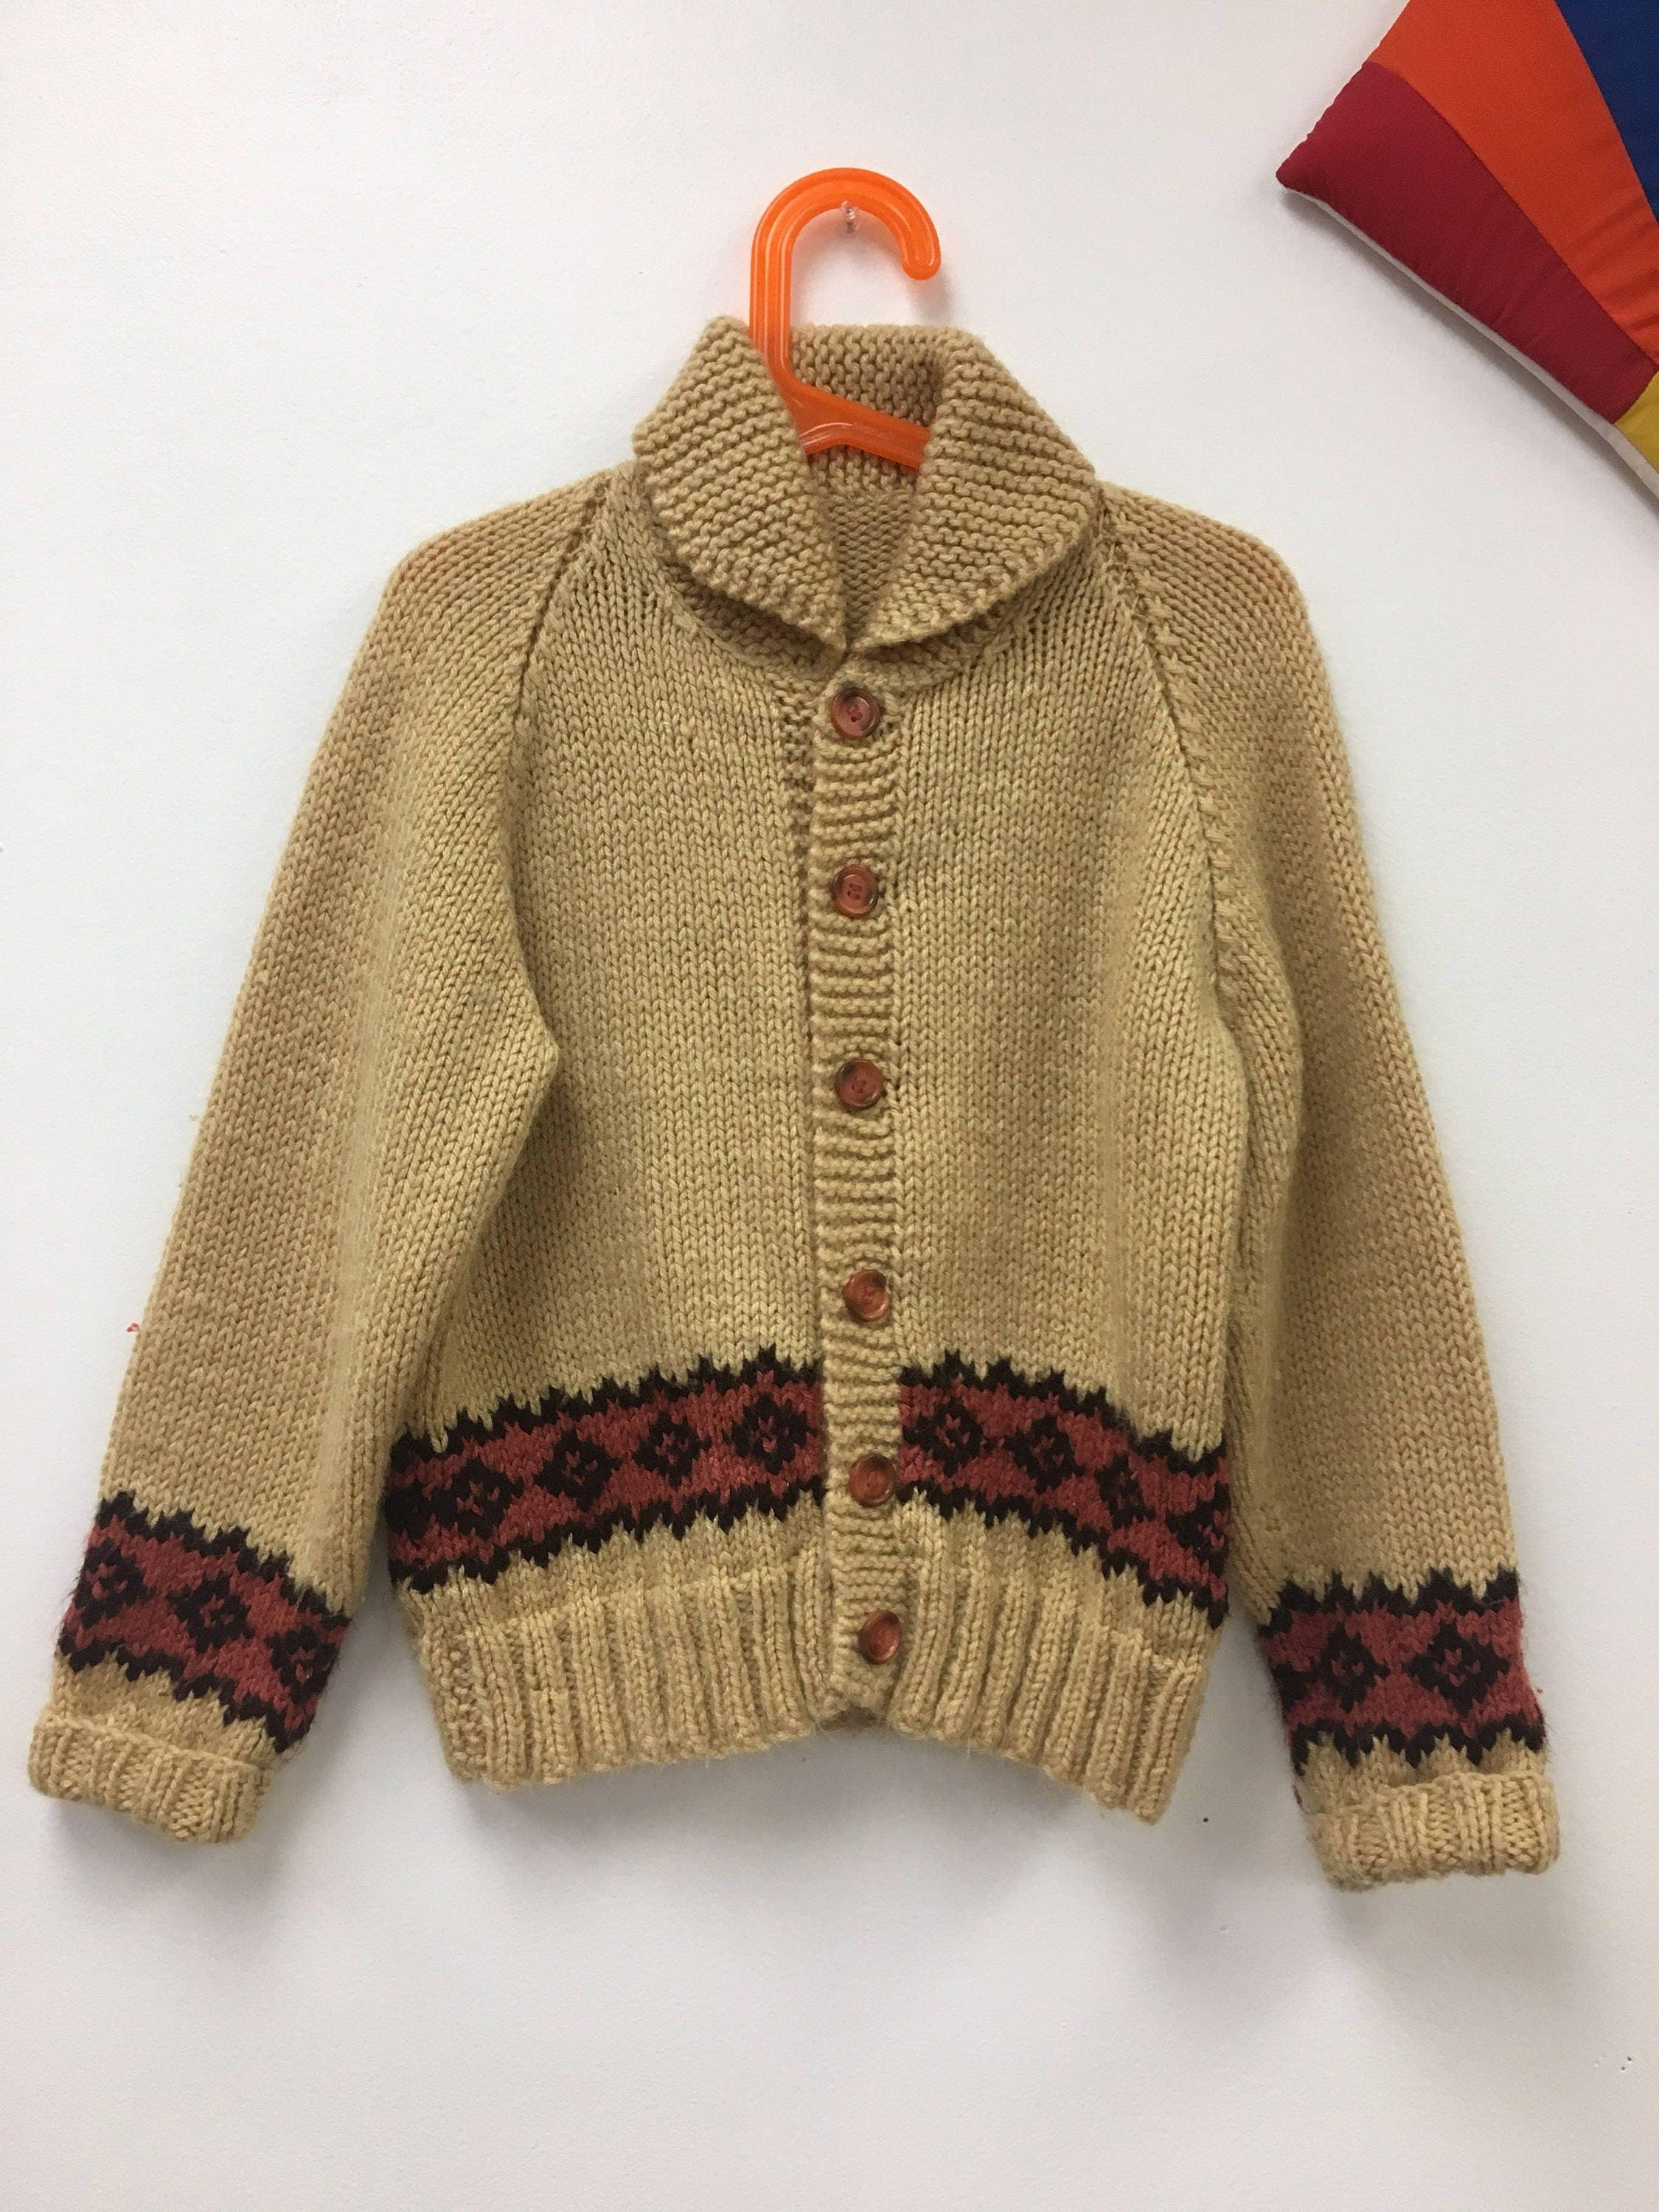 Vintage Children's 1980s Brown Knit Cardigan Sweater Charlie Brown ...